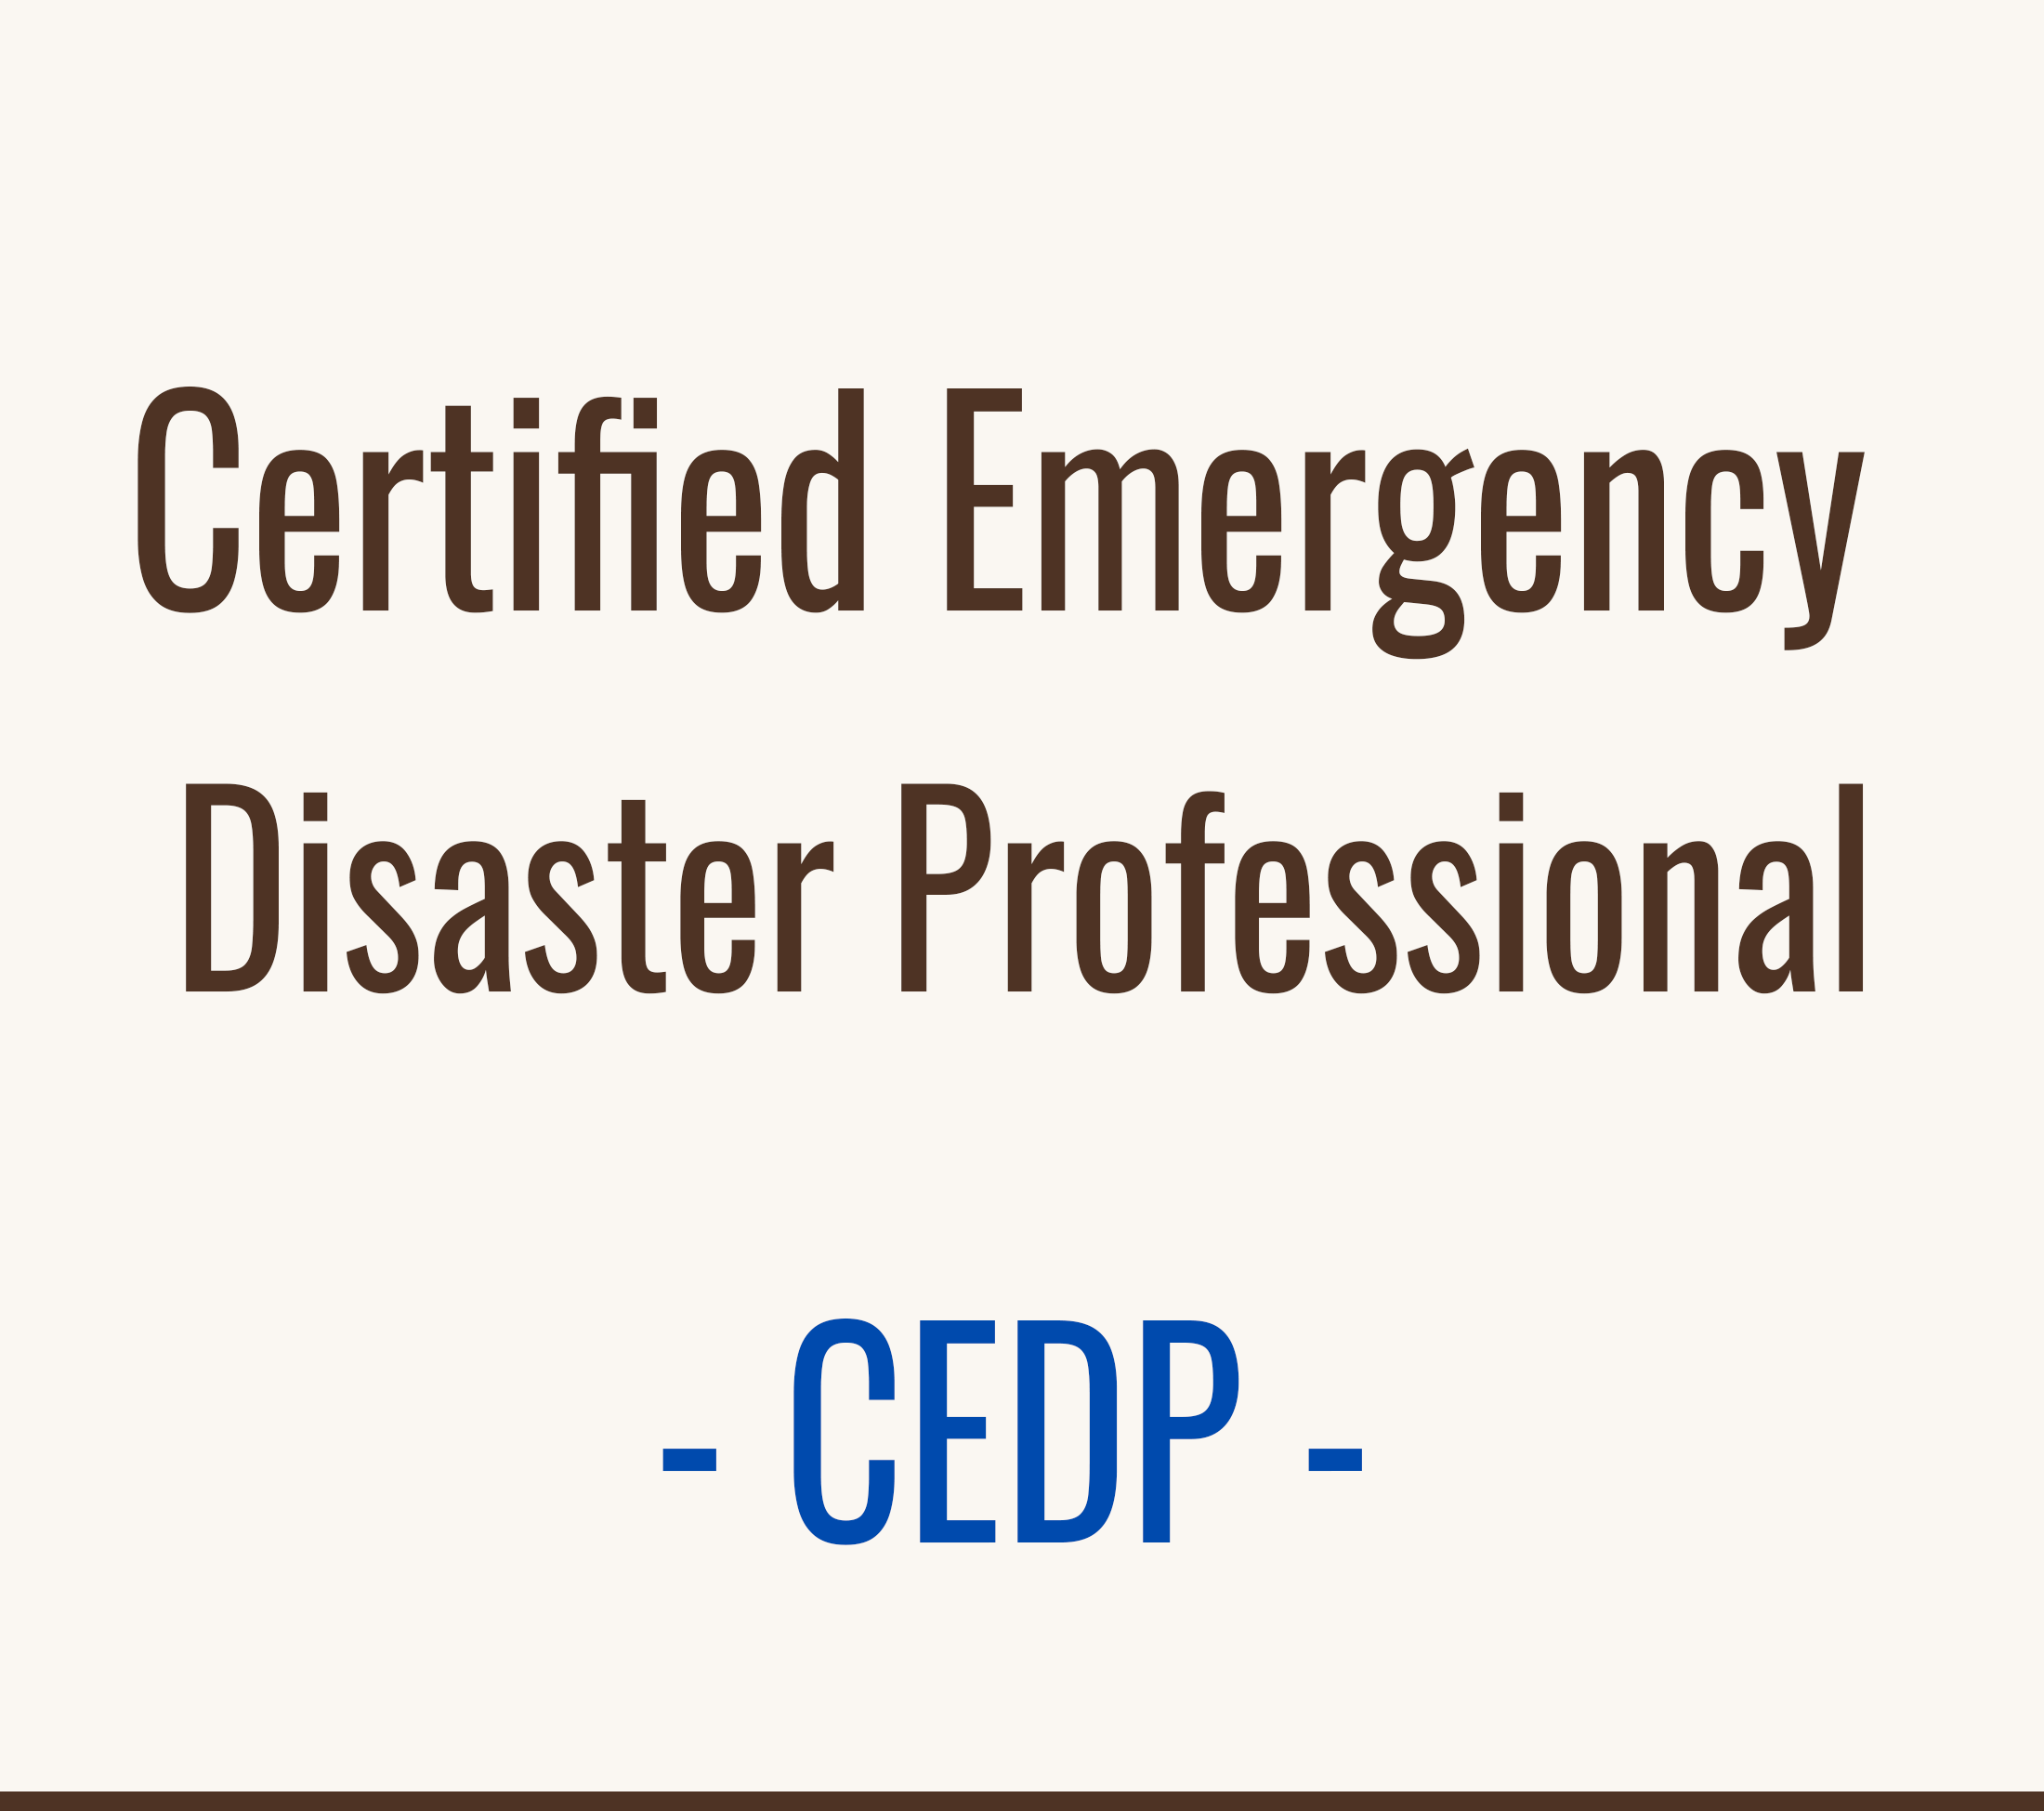 Certified Emergency Disaster Professional